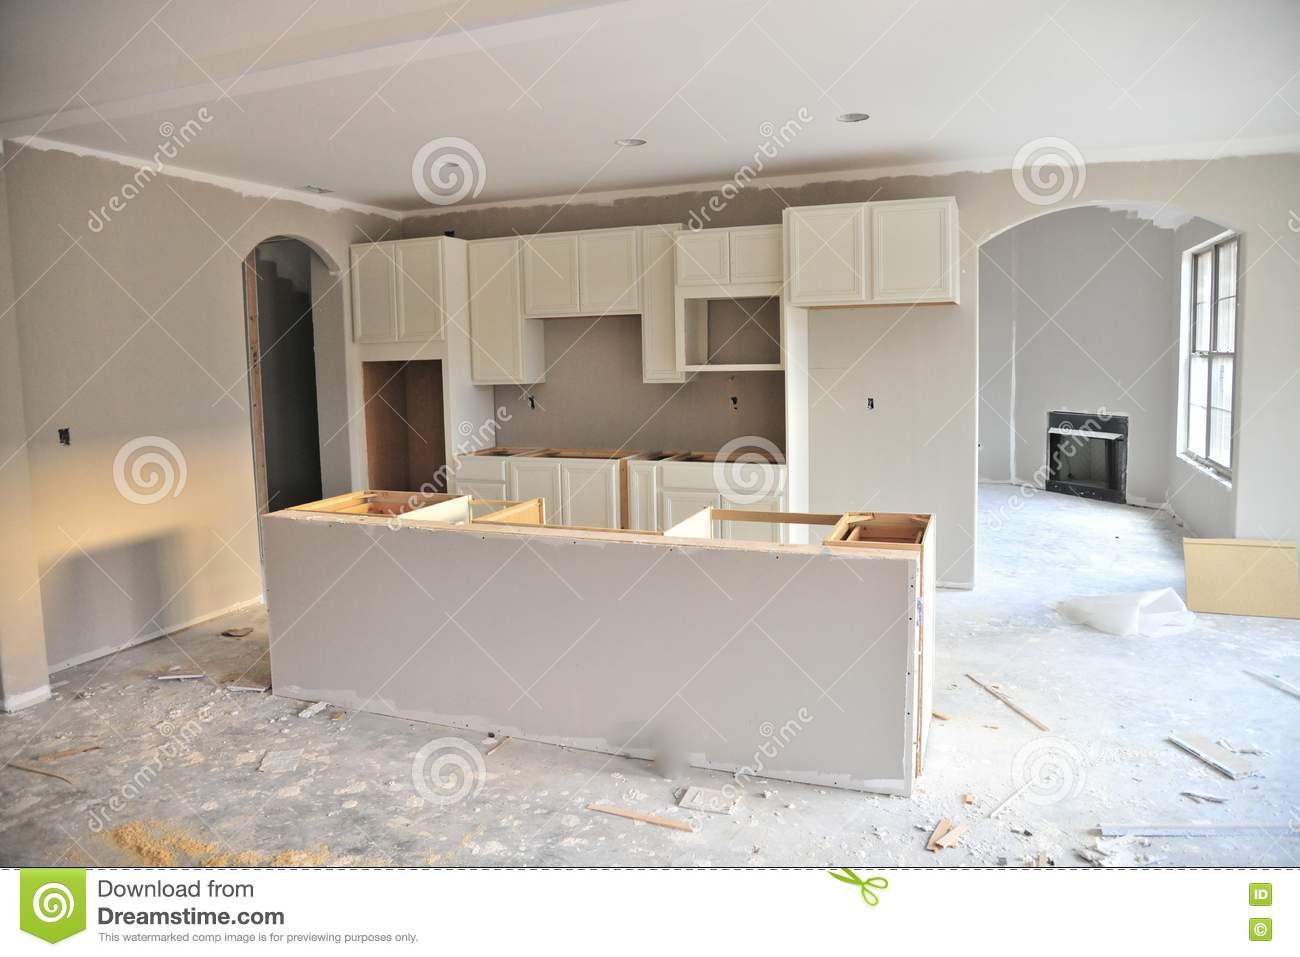 Unfinished Kitchen In New Home Stock Photo Image 79572943